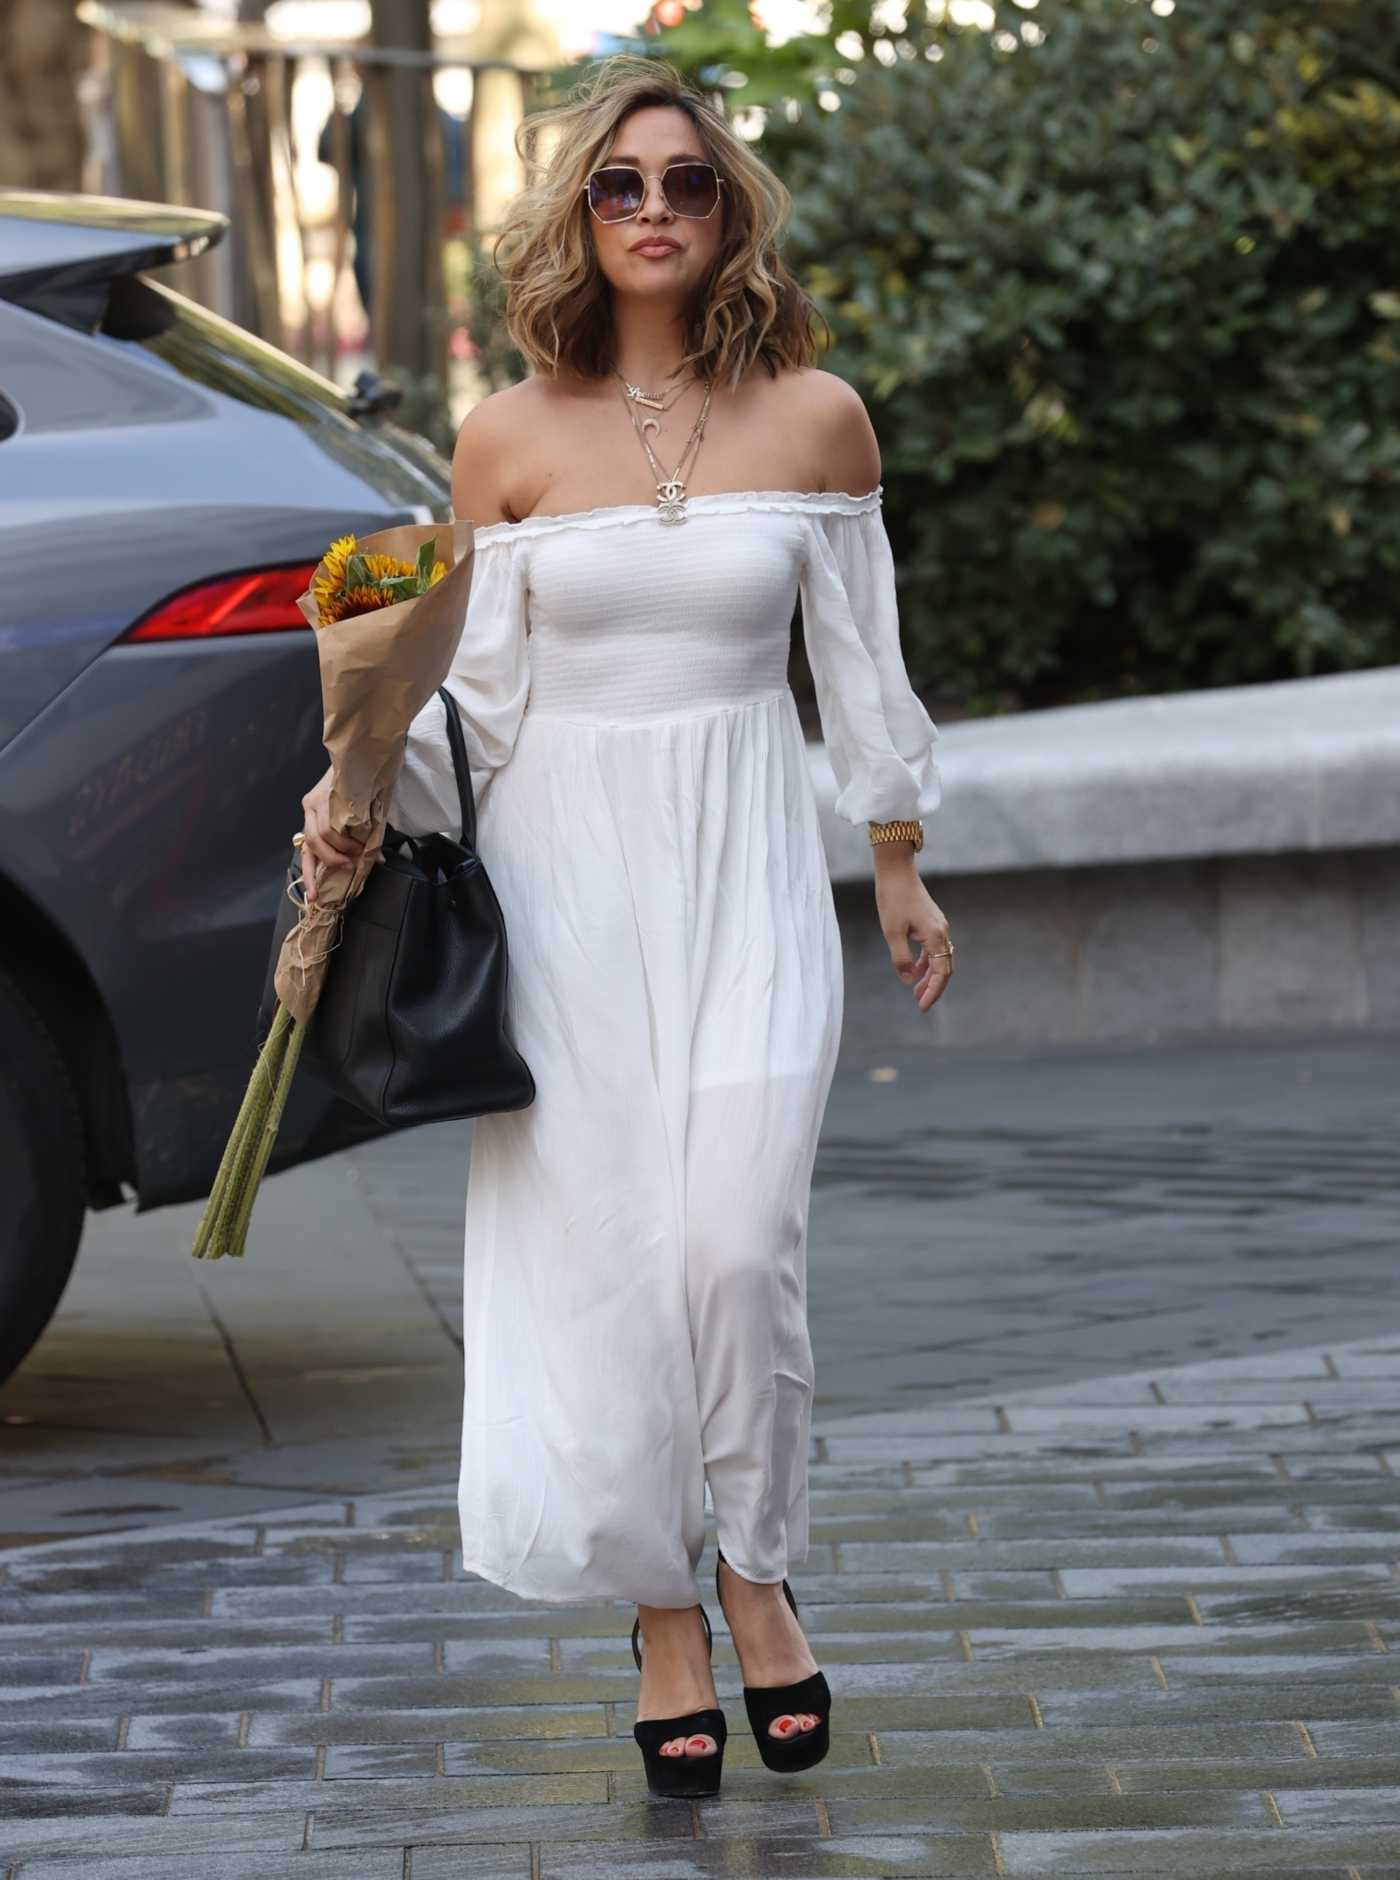 Myleene Klass in a White Dress Arrives at the Smooth Radio Studios in London 07/22/2020